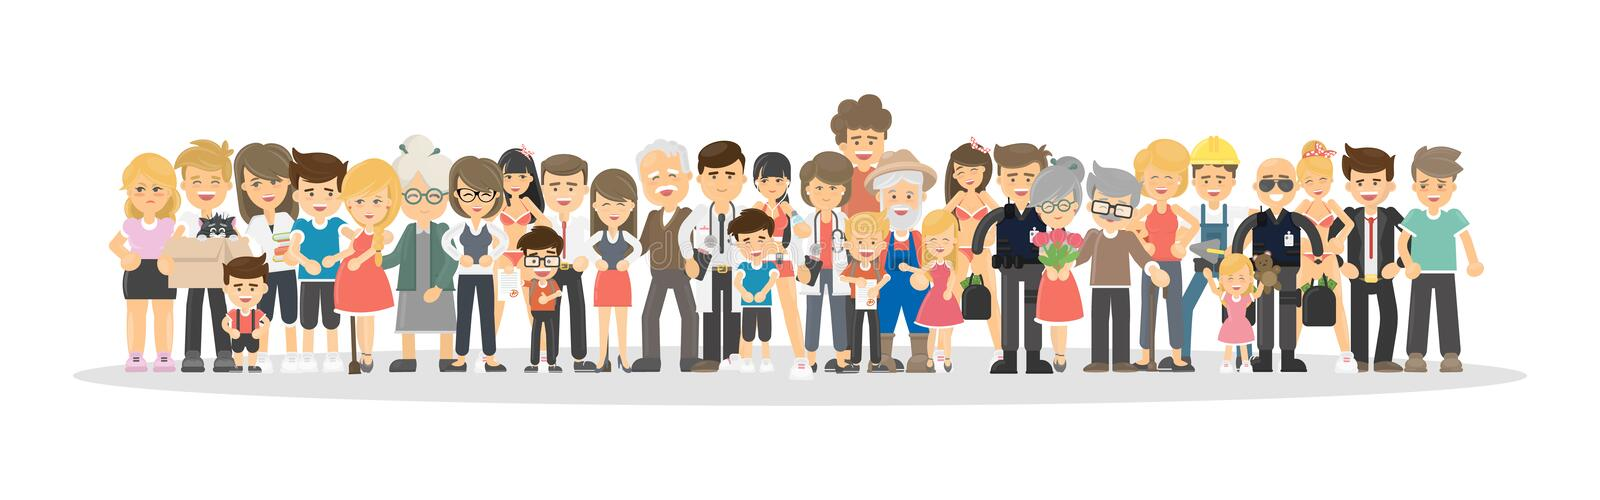 People on white. People on white background. Concept of big family, network community royalty free illustration